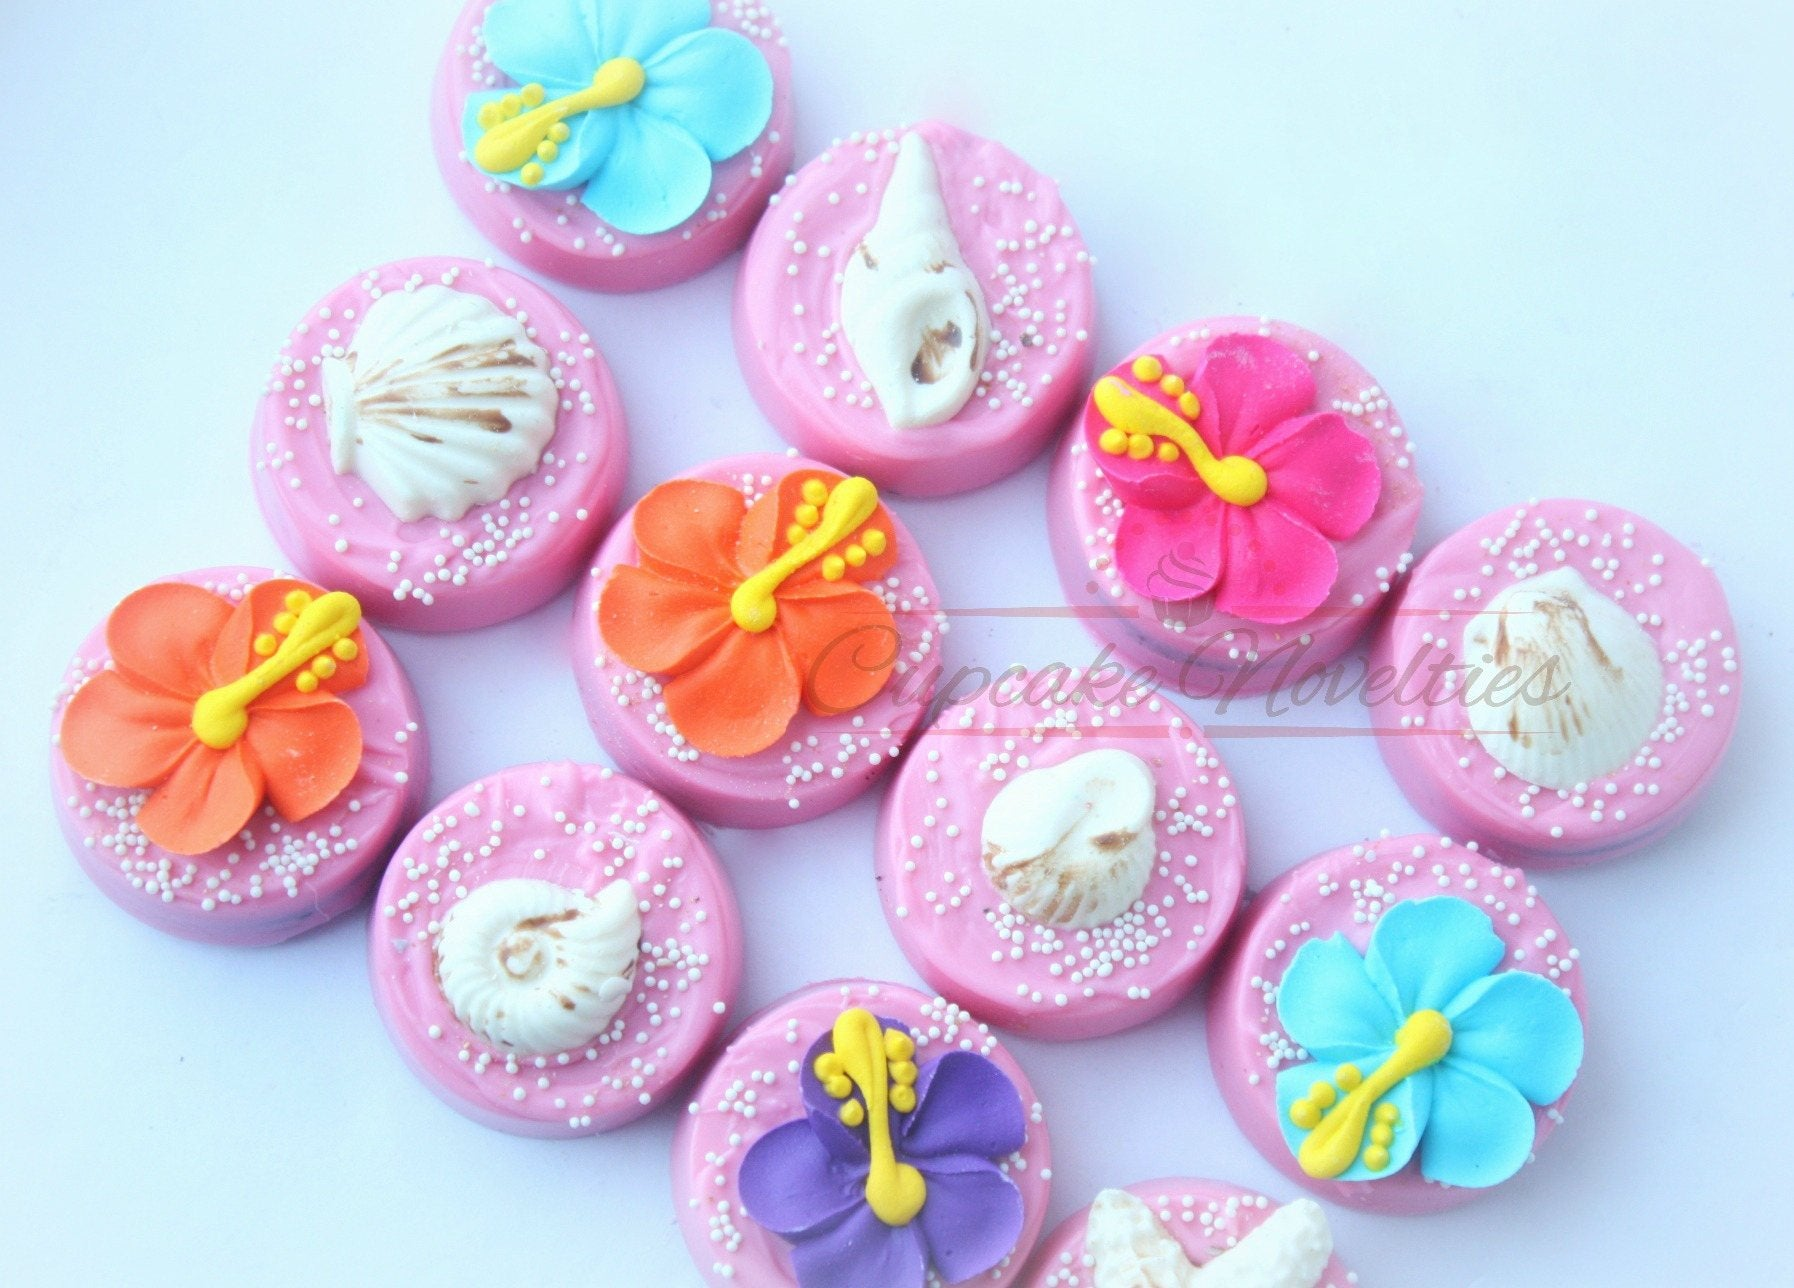 Moana Birthday Moana Party Favors Luau Cookie Luau Birthday Luau party Hawaiian Party Tropical party Beach Party Flamingle Tiki Party Oreos